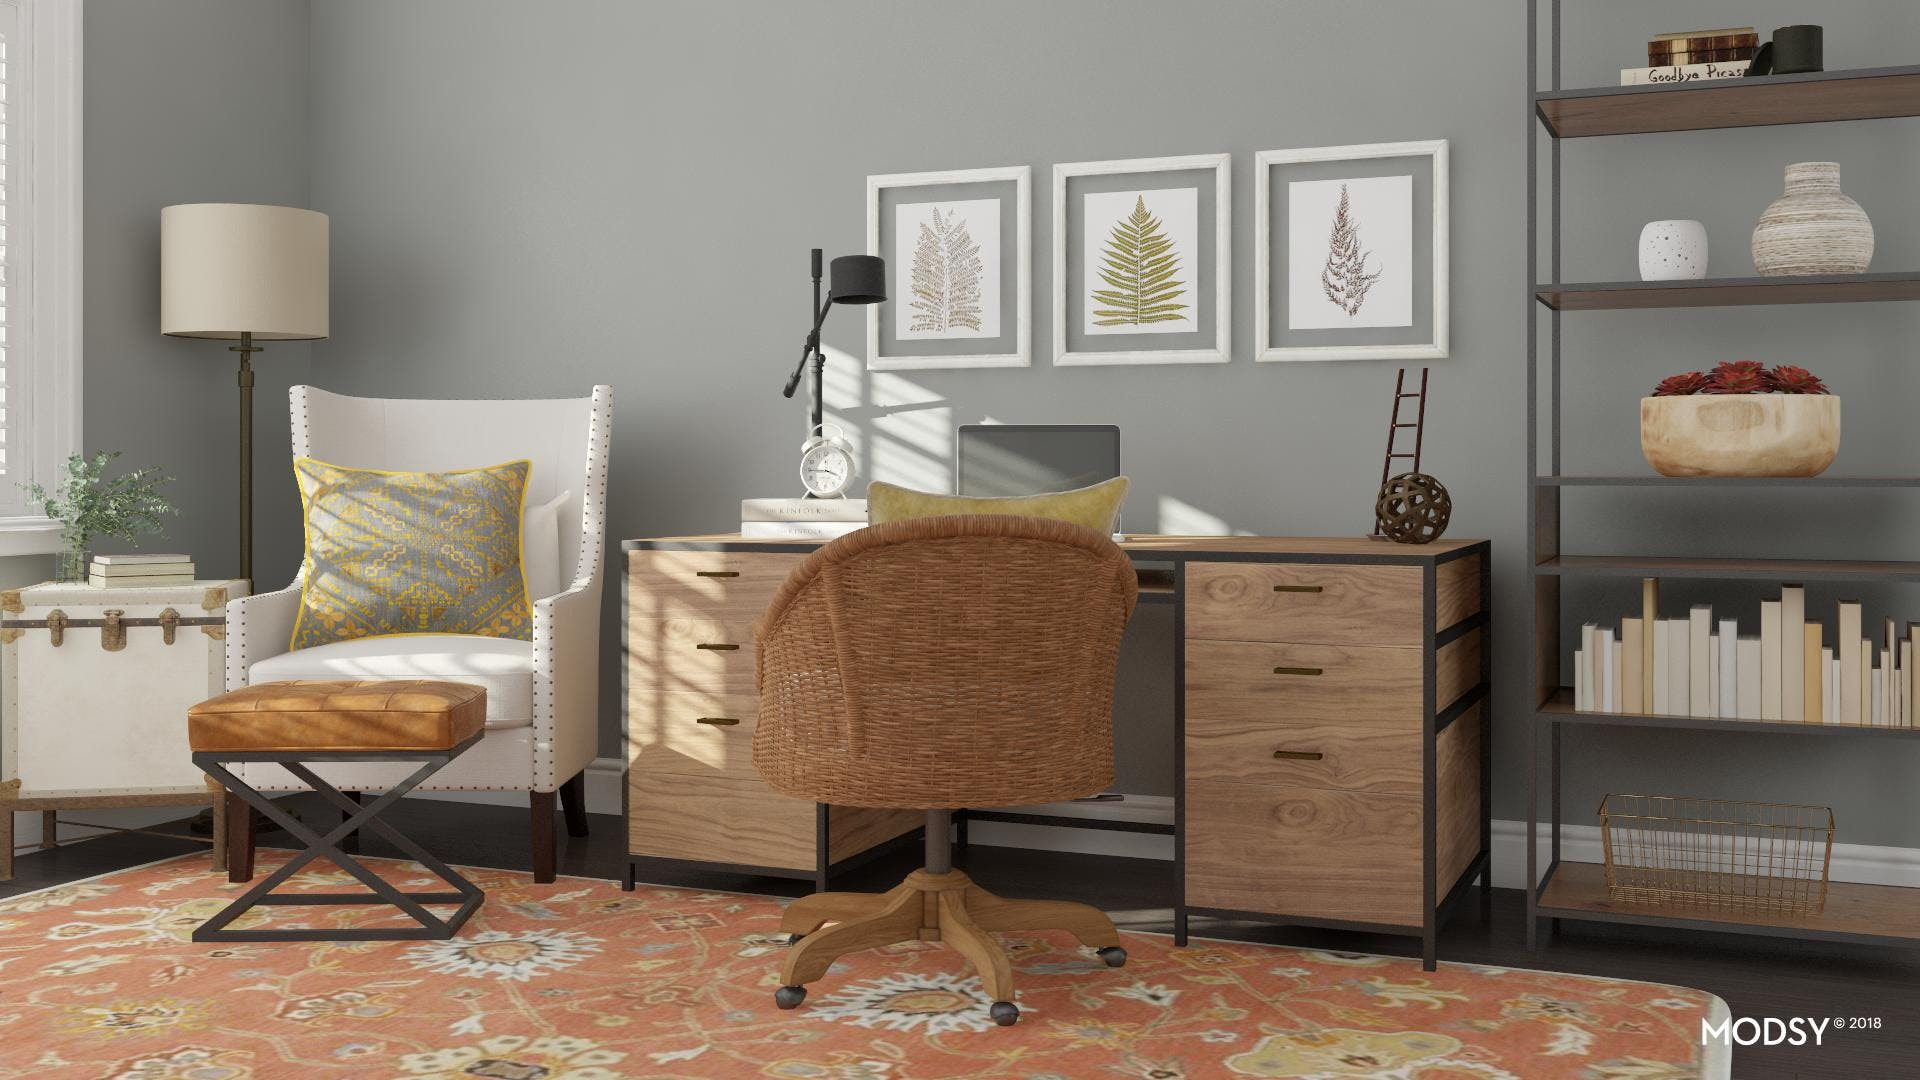 A Rustic-Chic Home Office